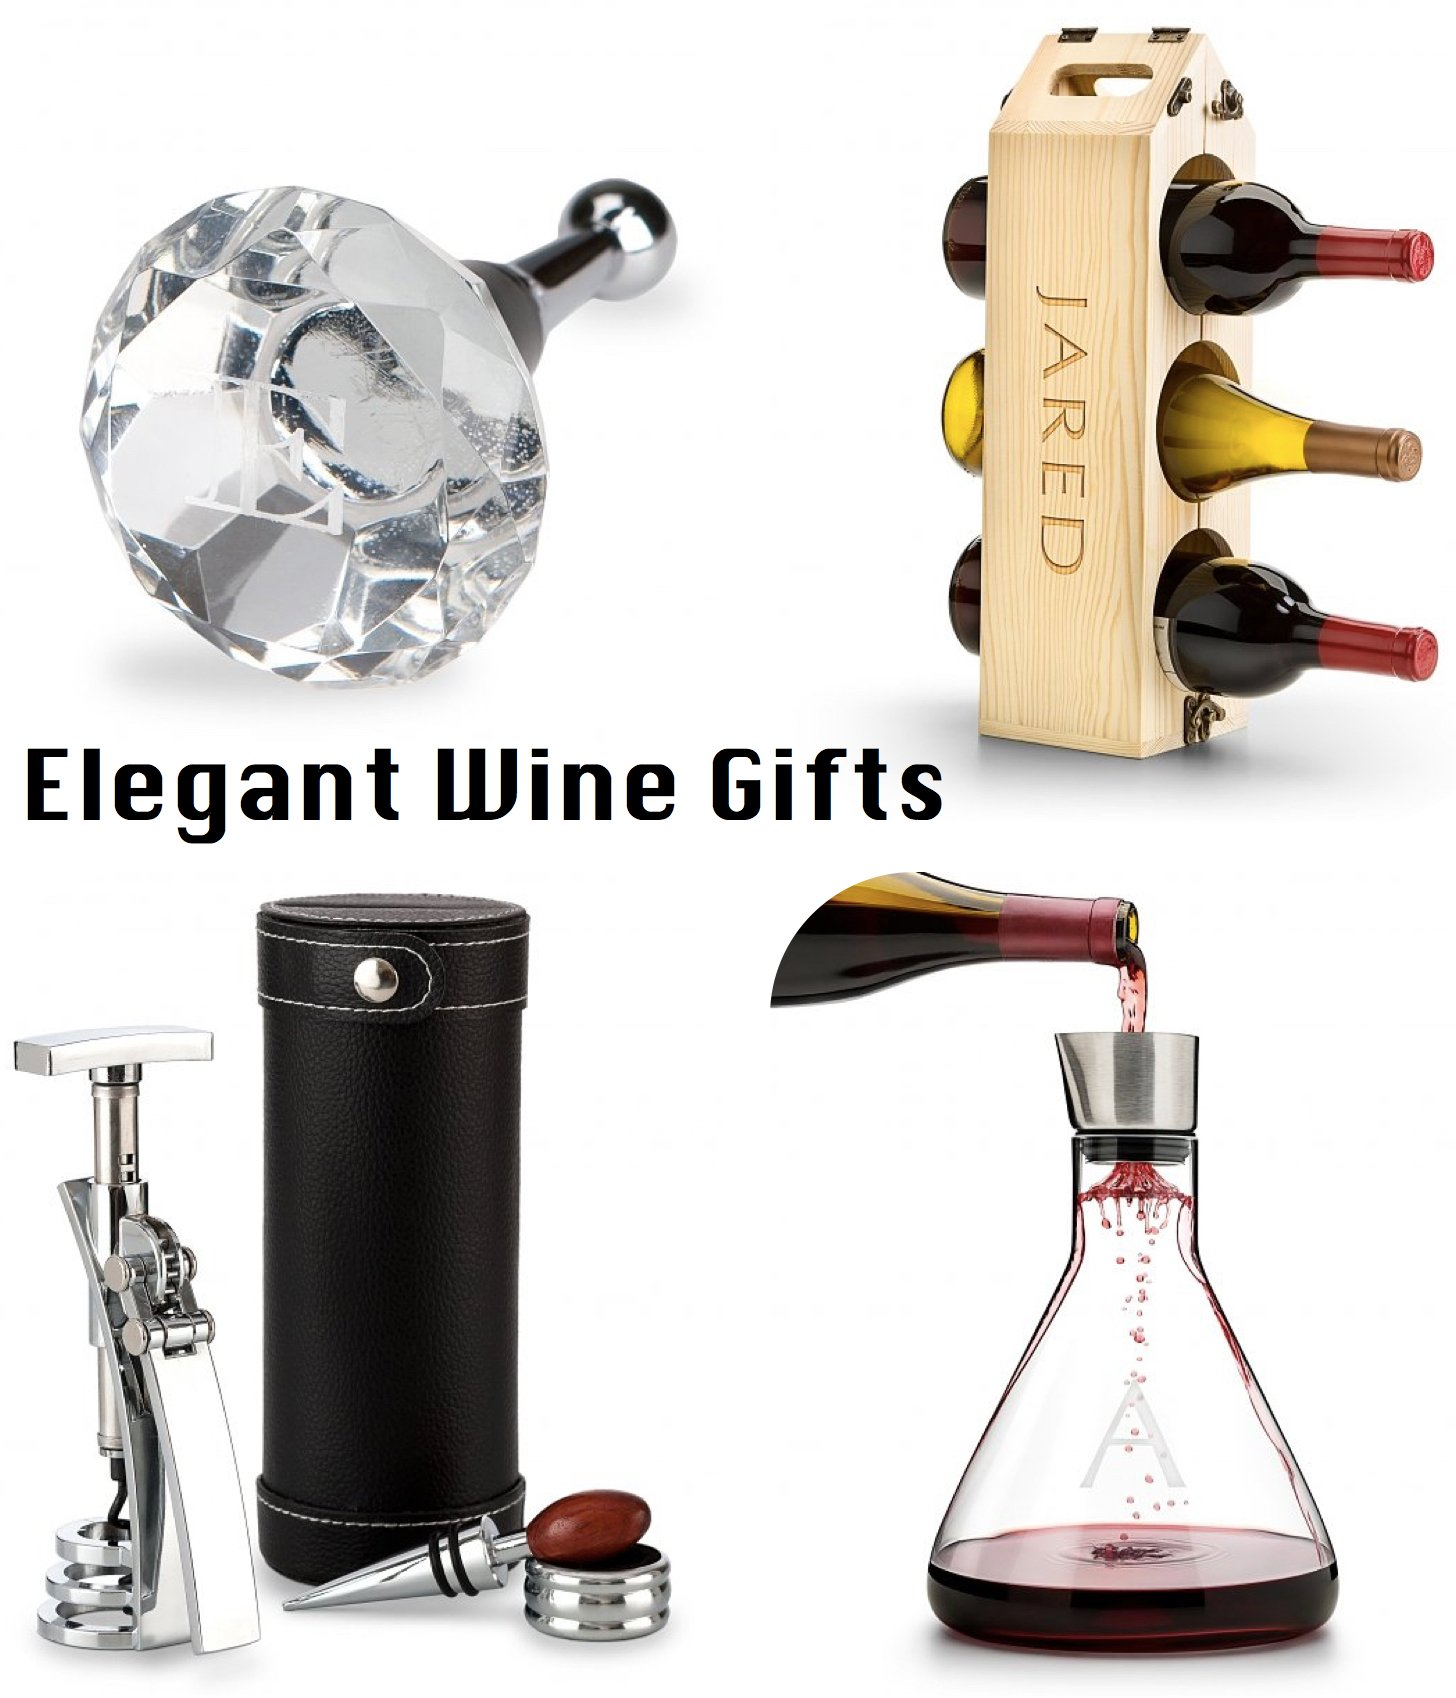 Elegant Wine Gifts